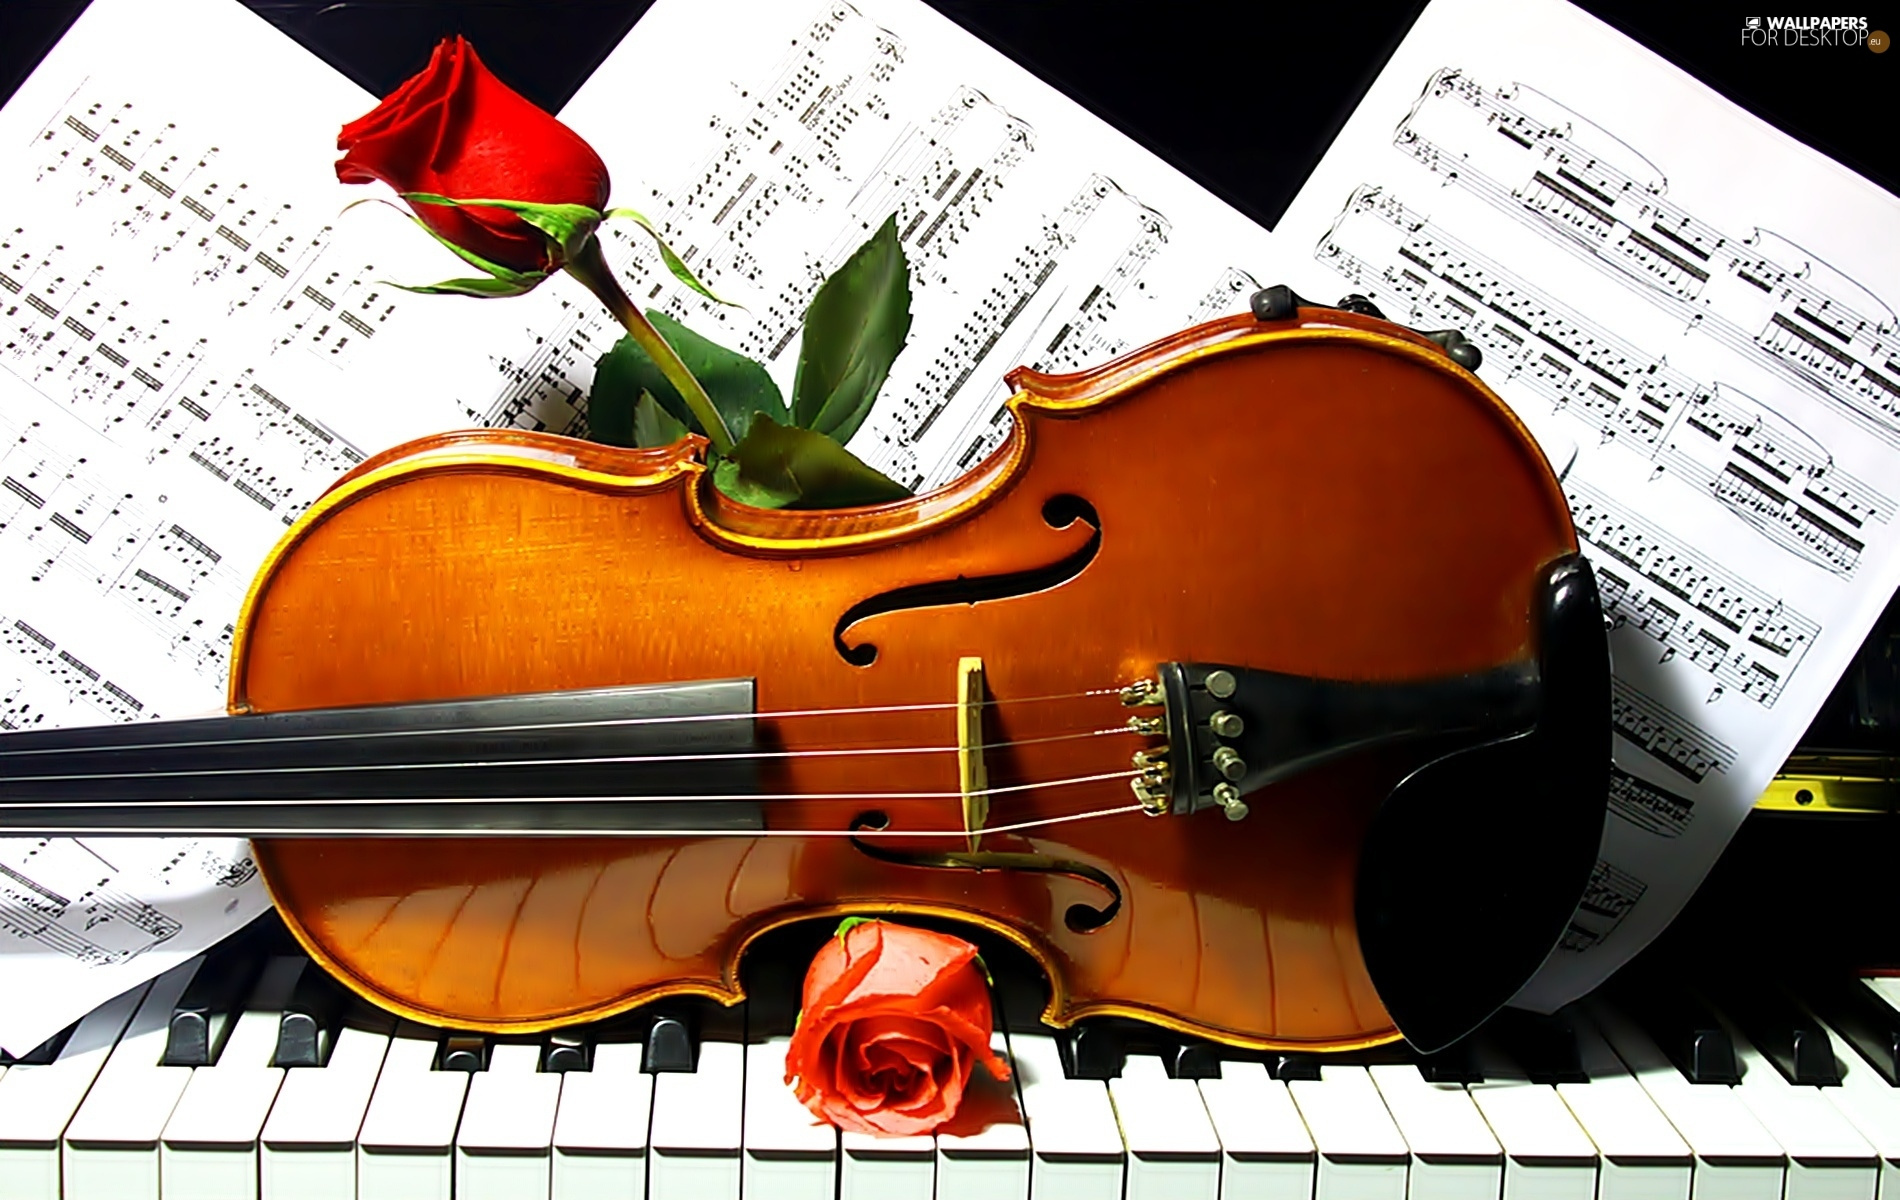 Piano and Violin Wallpaper - WallpaperSafari